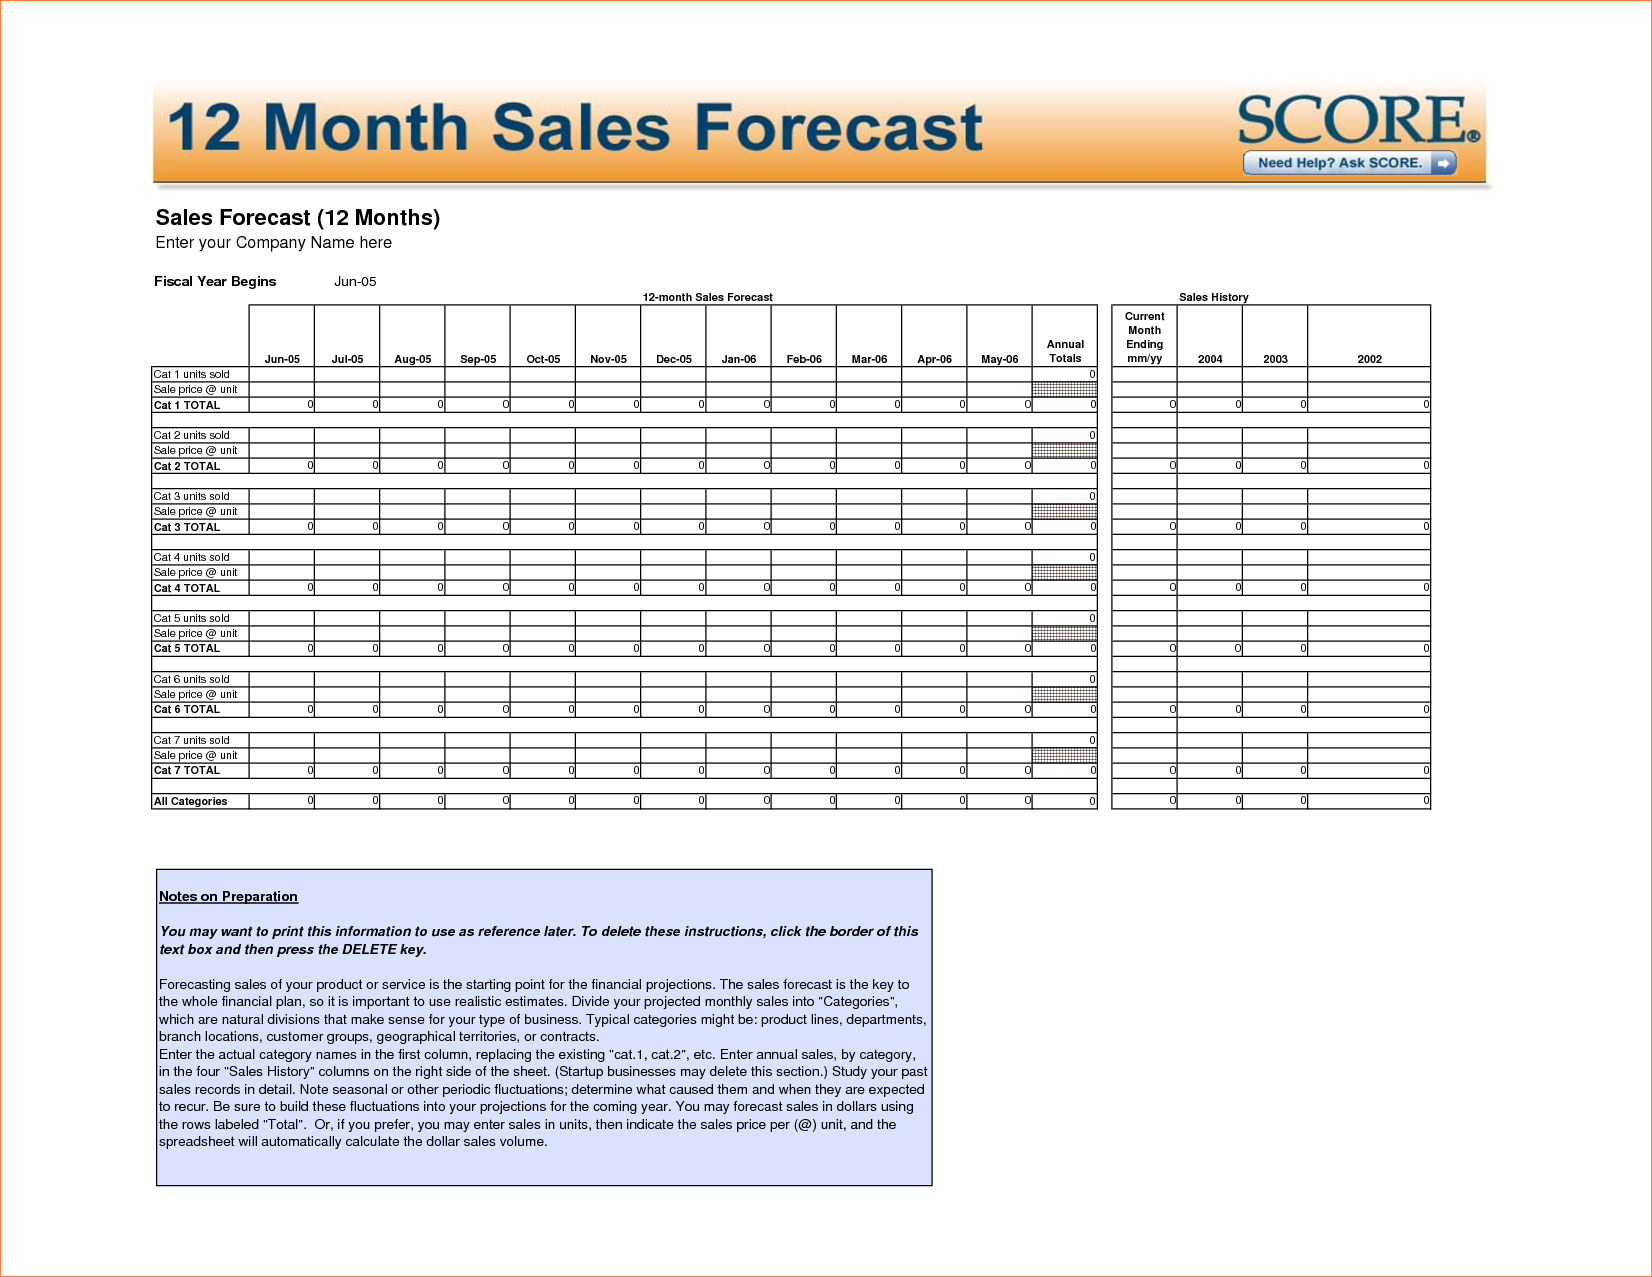 Sales Forecast Template Sales Forecast Spreadsheet Template Spreadsheet Templates for Busines Spreadsheet Templates for Busines Sales Forecast Model